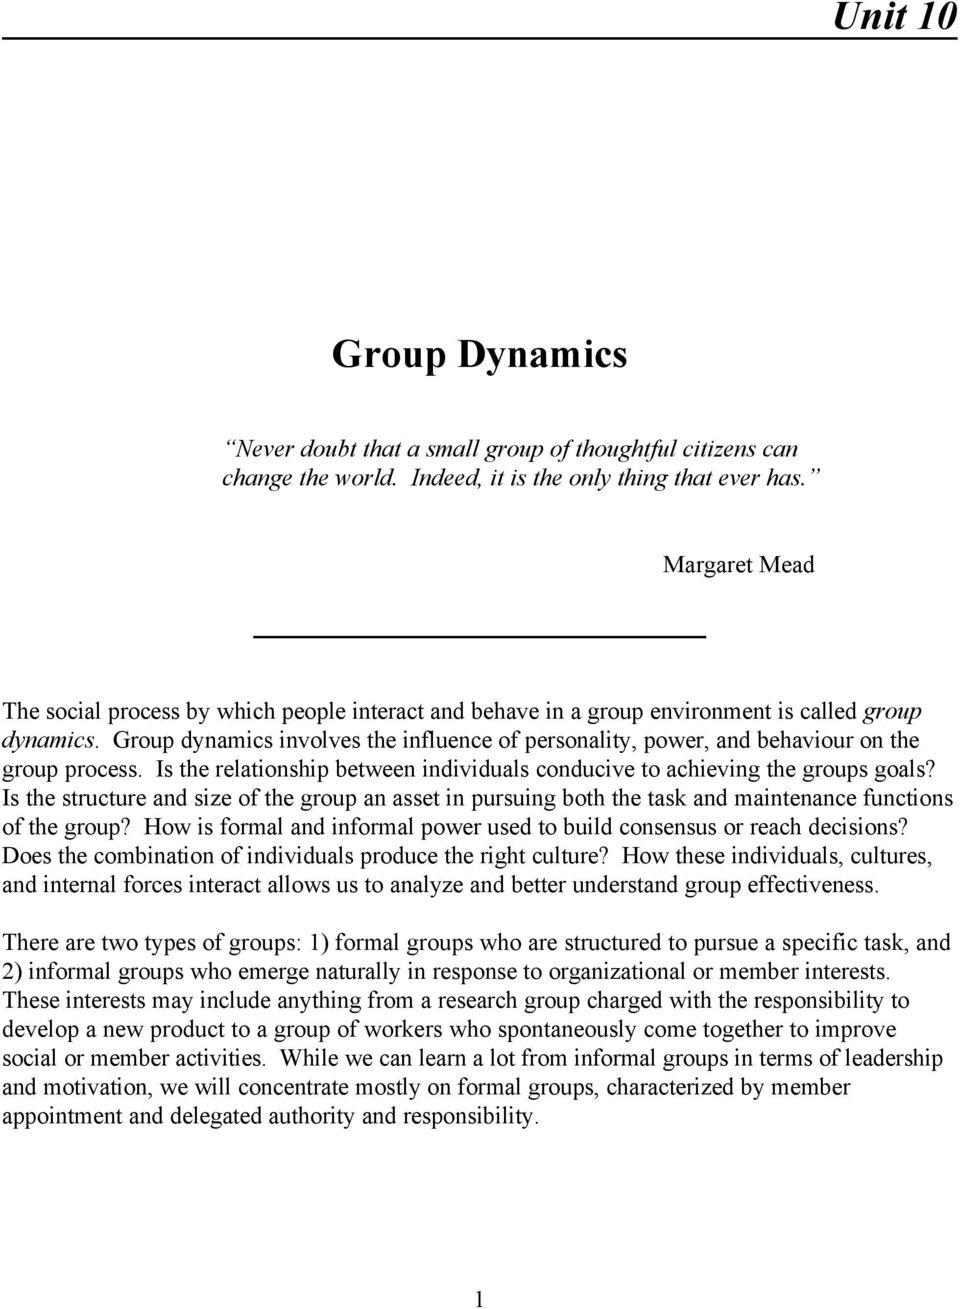 how social organisation and relationships may affect the learning process for group dynamics As interest in group processes and group dynamics developed and  as two or  more individuals who are connected to one another by social relationships   norms and values and by learning through performing our different social roles)   either by their members, or by some external individual, group or organization.